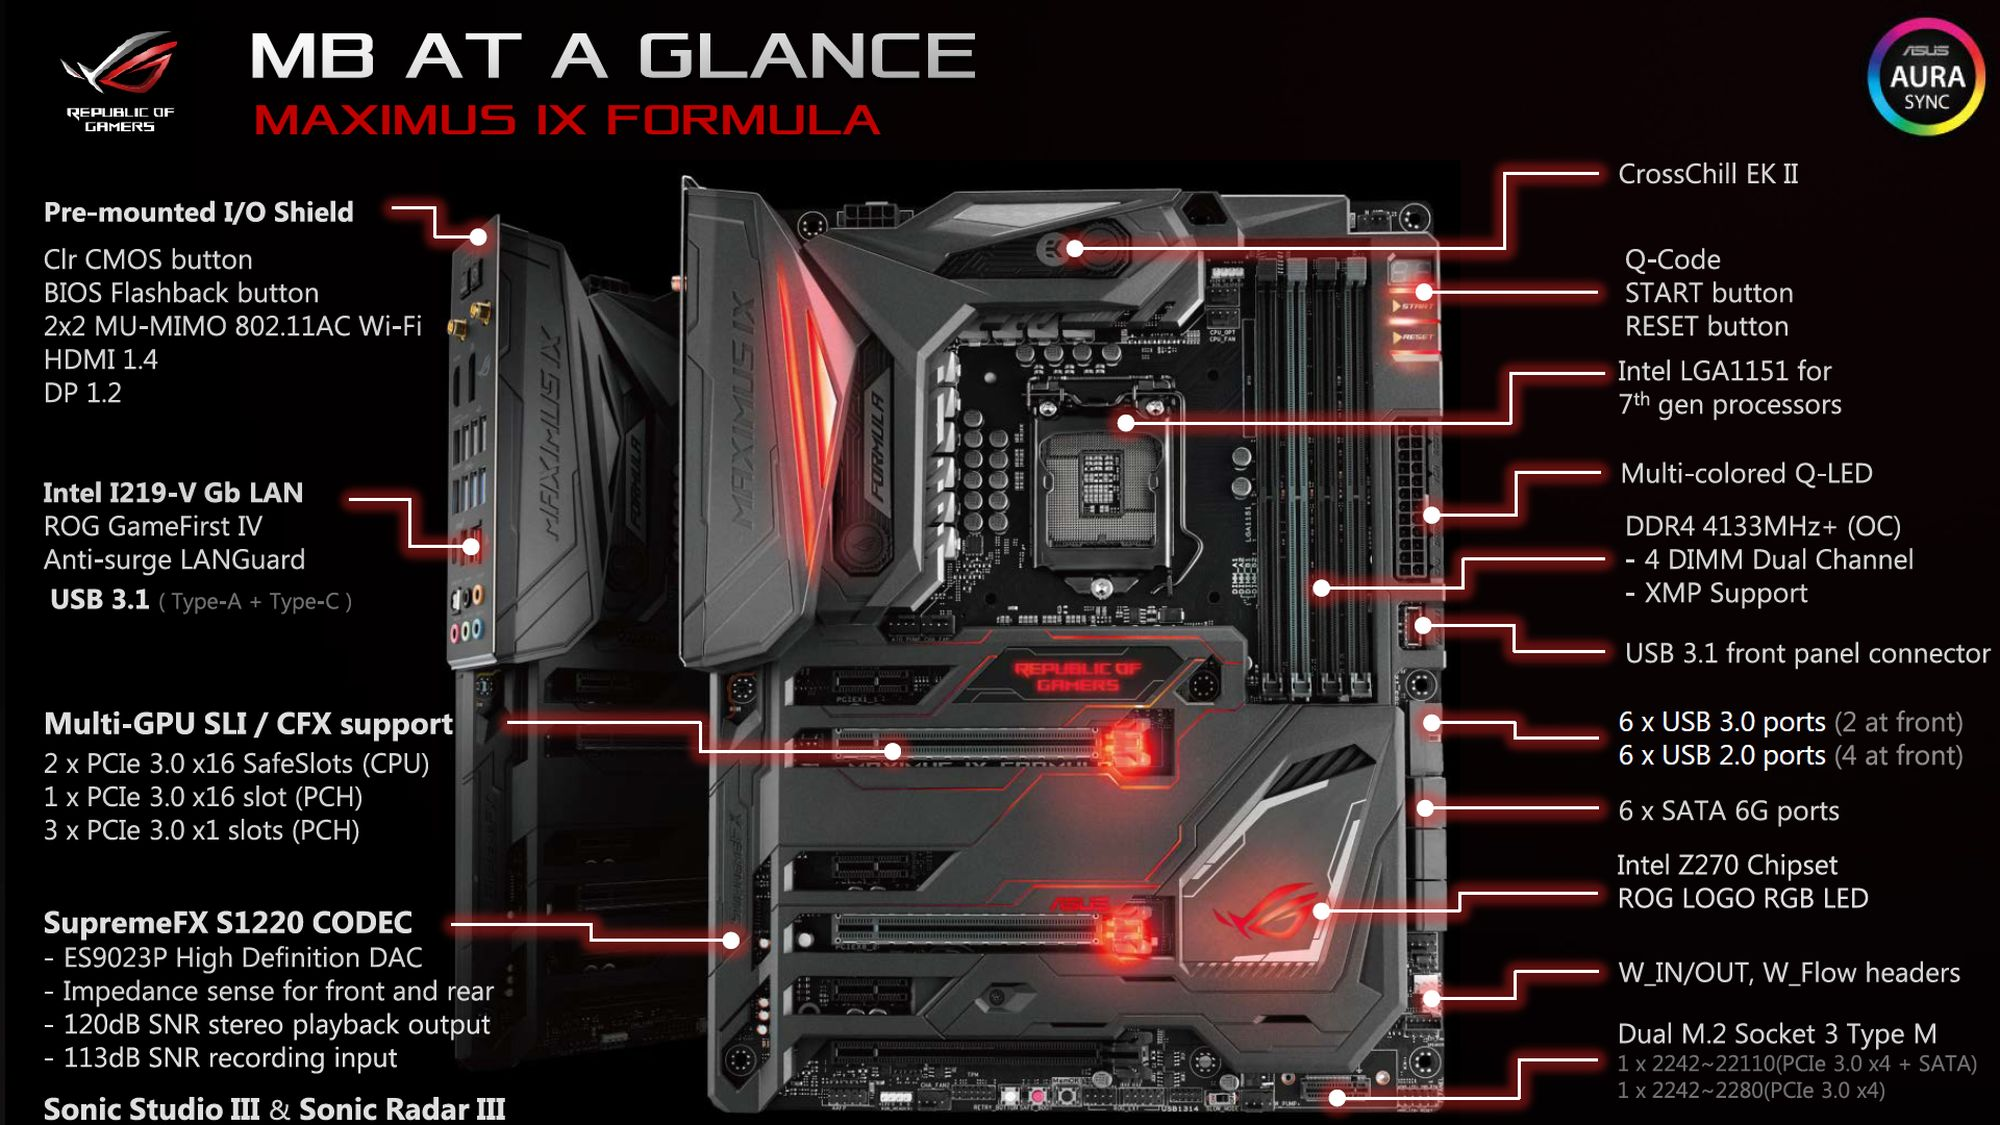 ASUS unveils new Z270 series motherboards at CES 2017 - HardwareZone